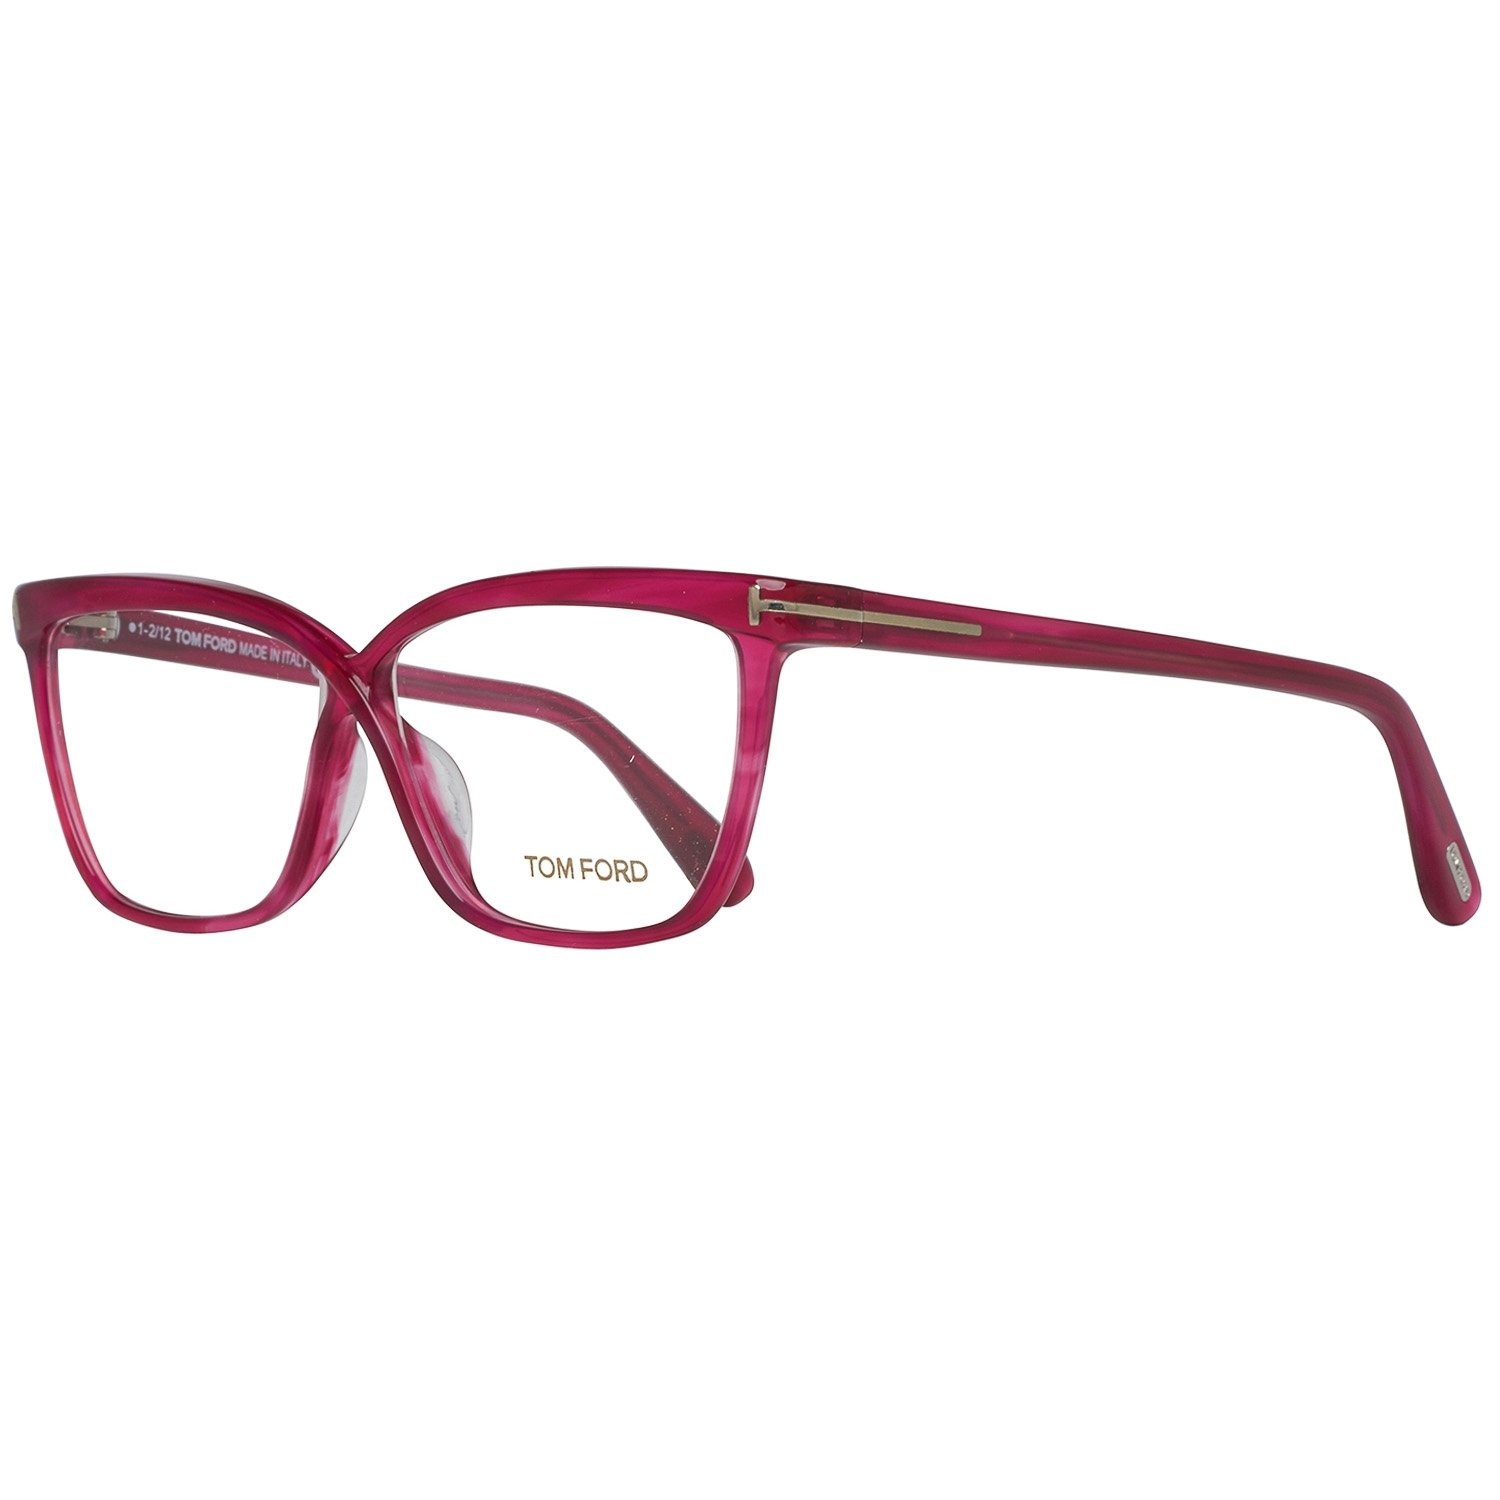 b9bcf6730a Amazon.com  Tom Ford frame (TF-4267 077) Acetate Pink fuschia fuchsia   Clothing